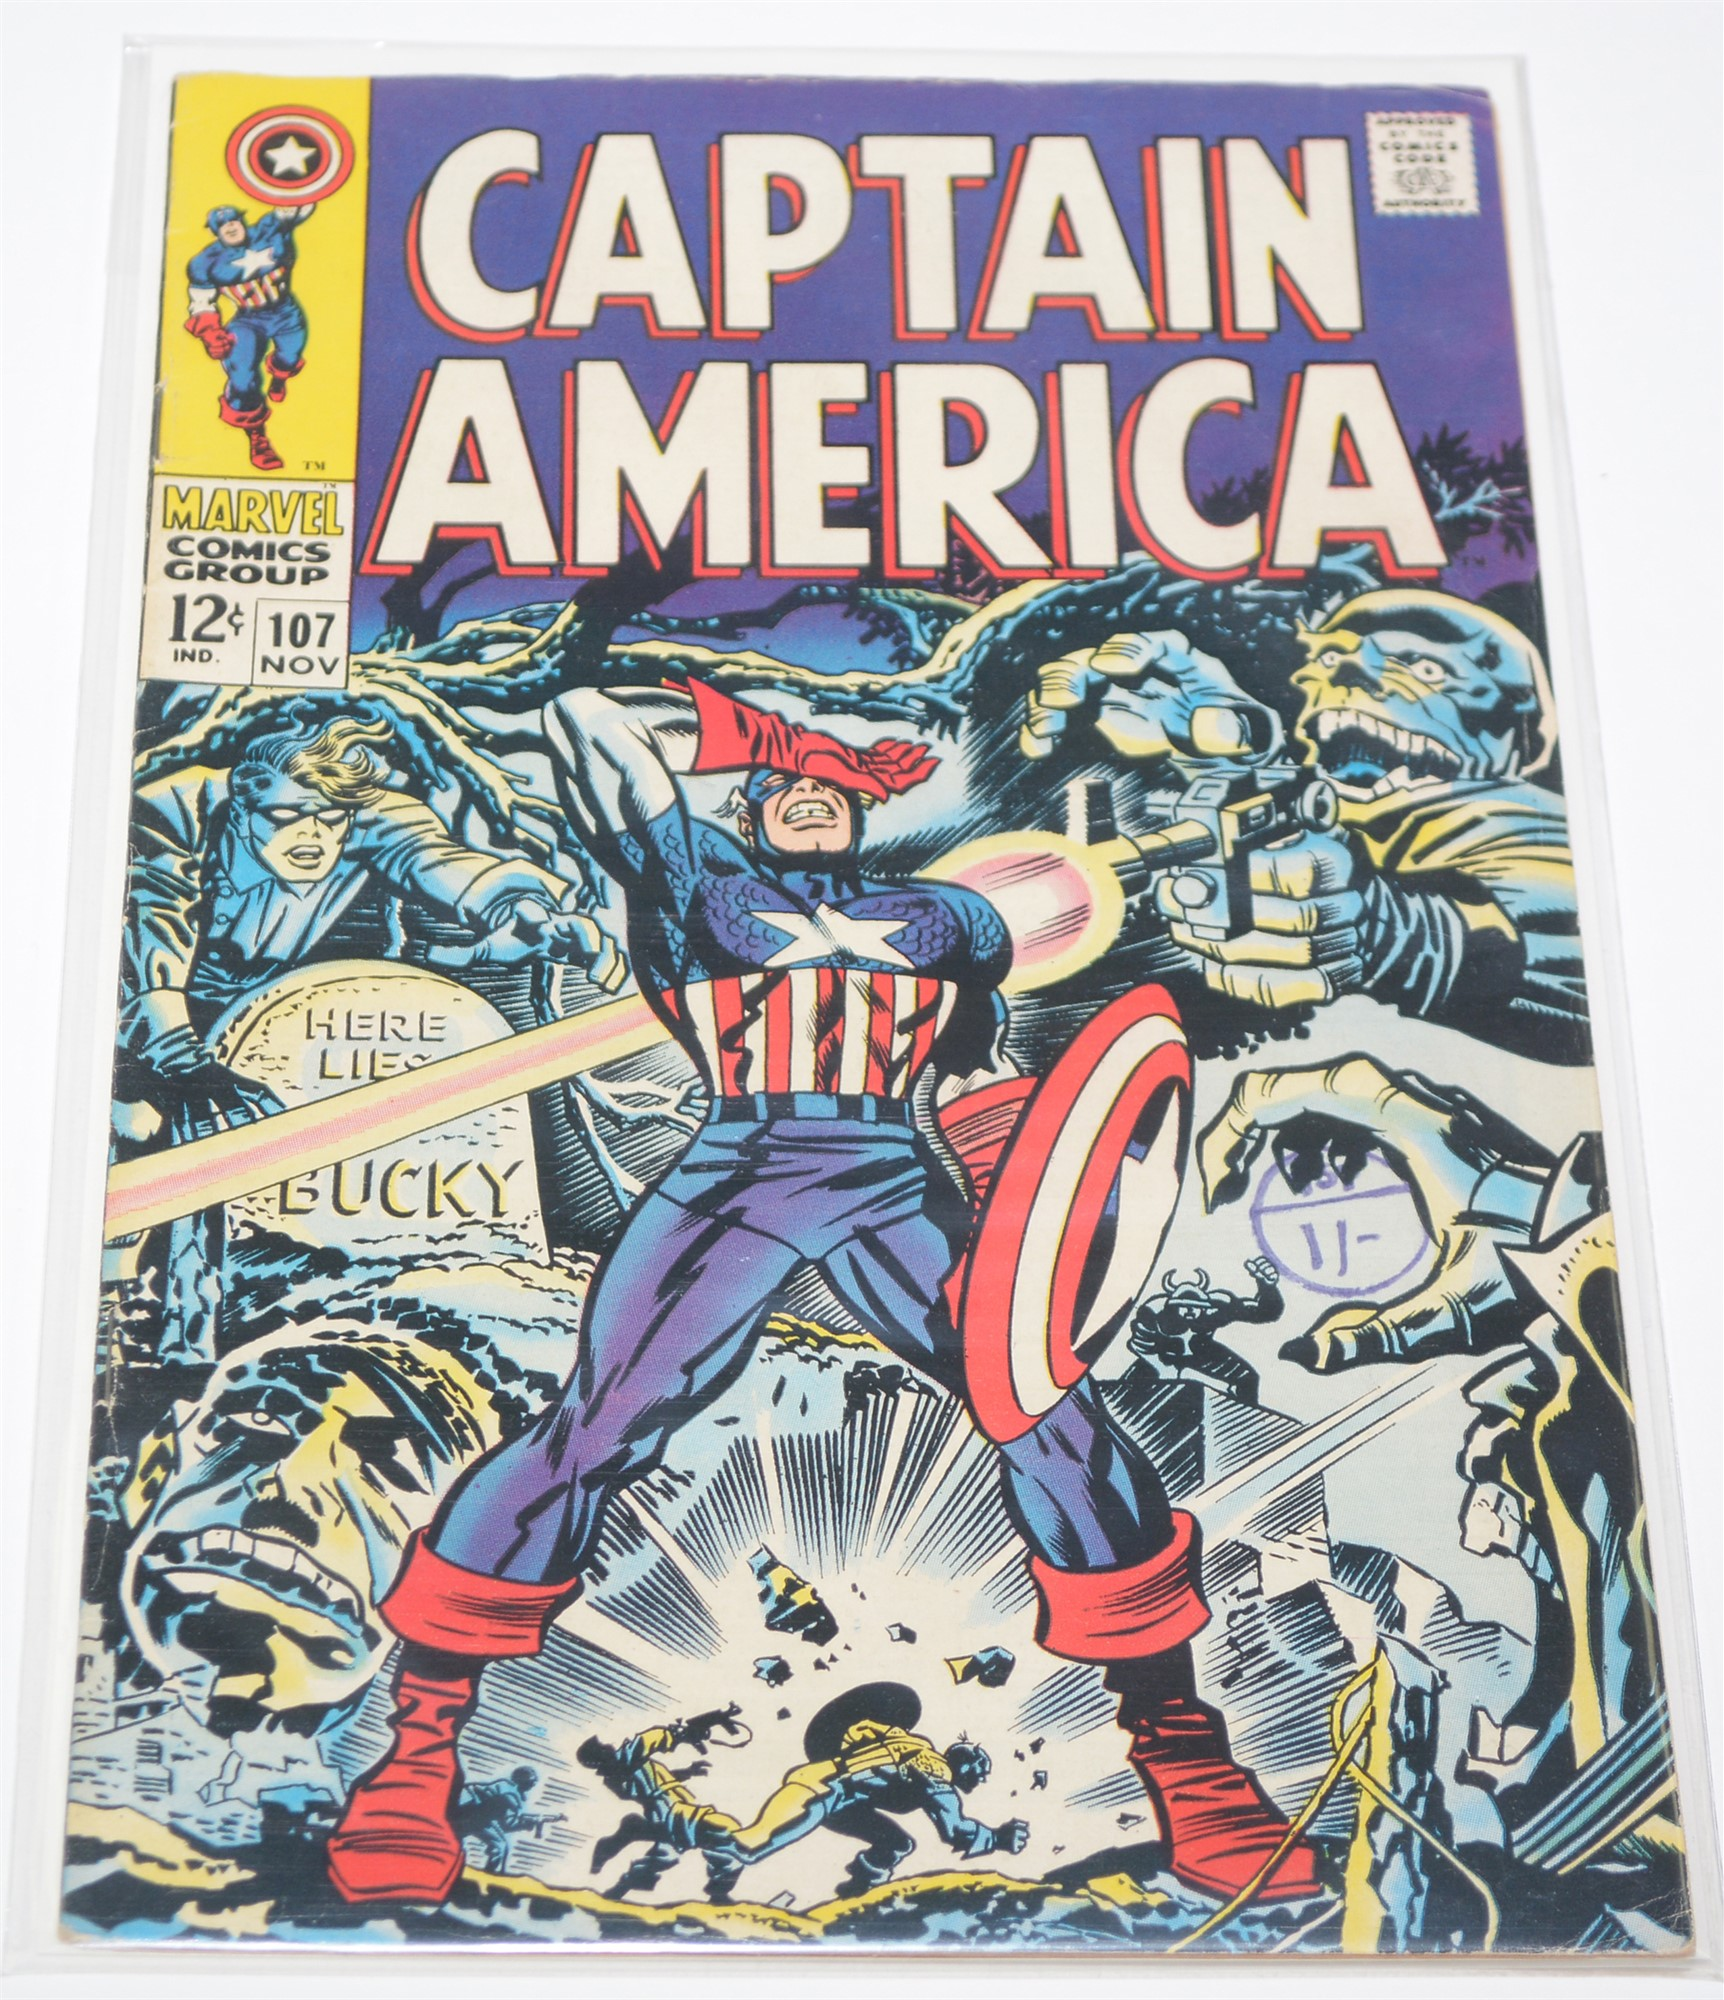 Captain America No. 101, 103, 104 and 107. - Image 4 of 4